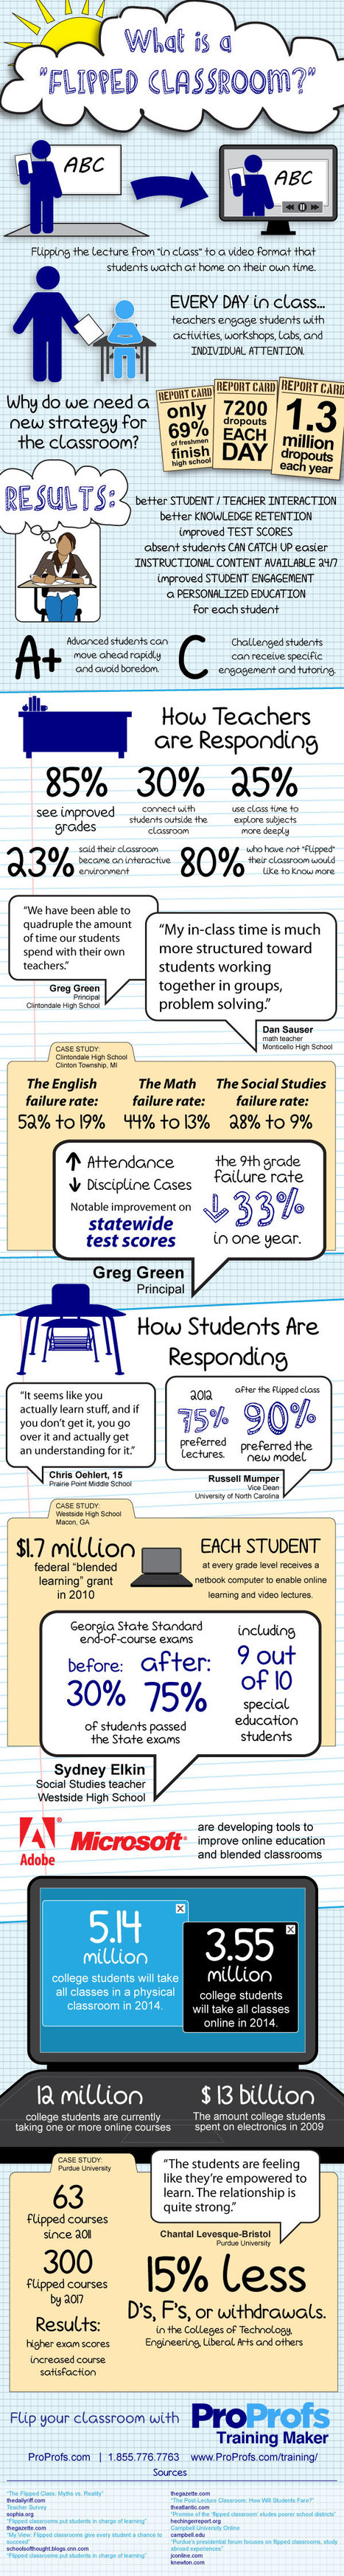 Descubre qué es The Flipped Classroom #infografia #infographic #education | Las TIC en el aula de ELE | Scoop.it